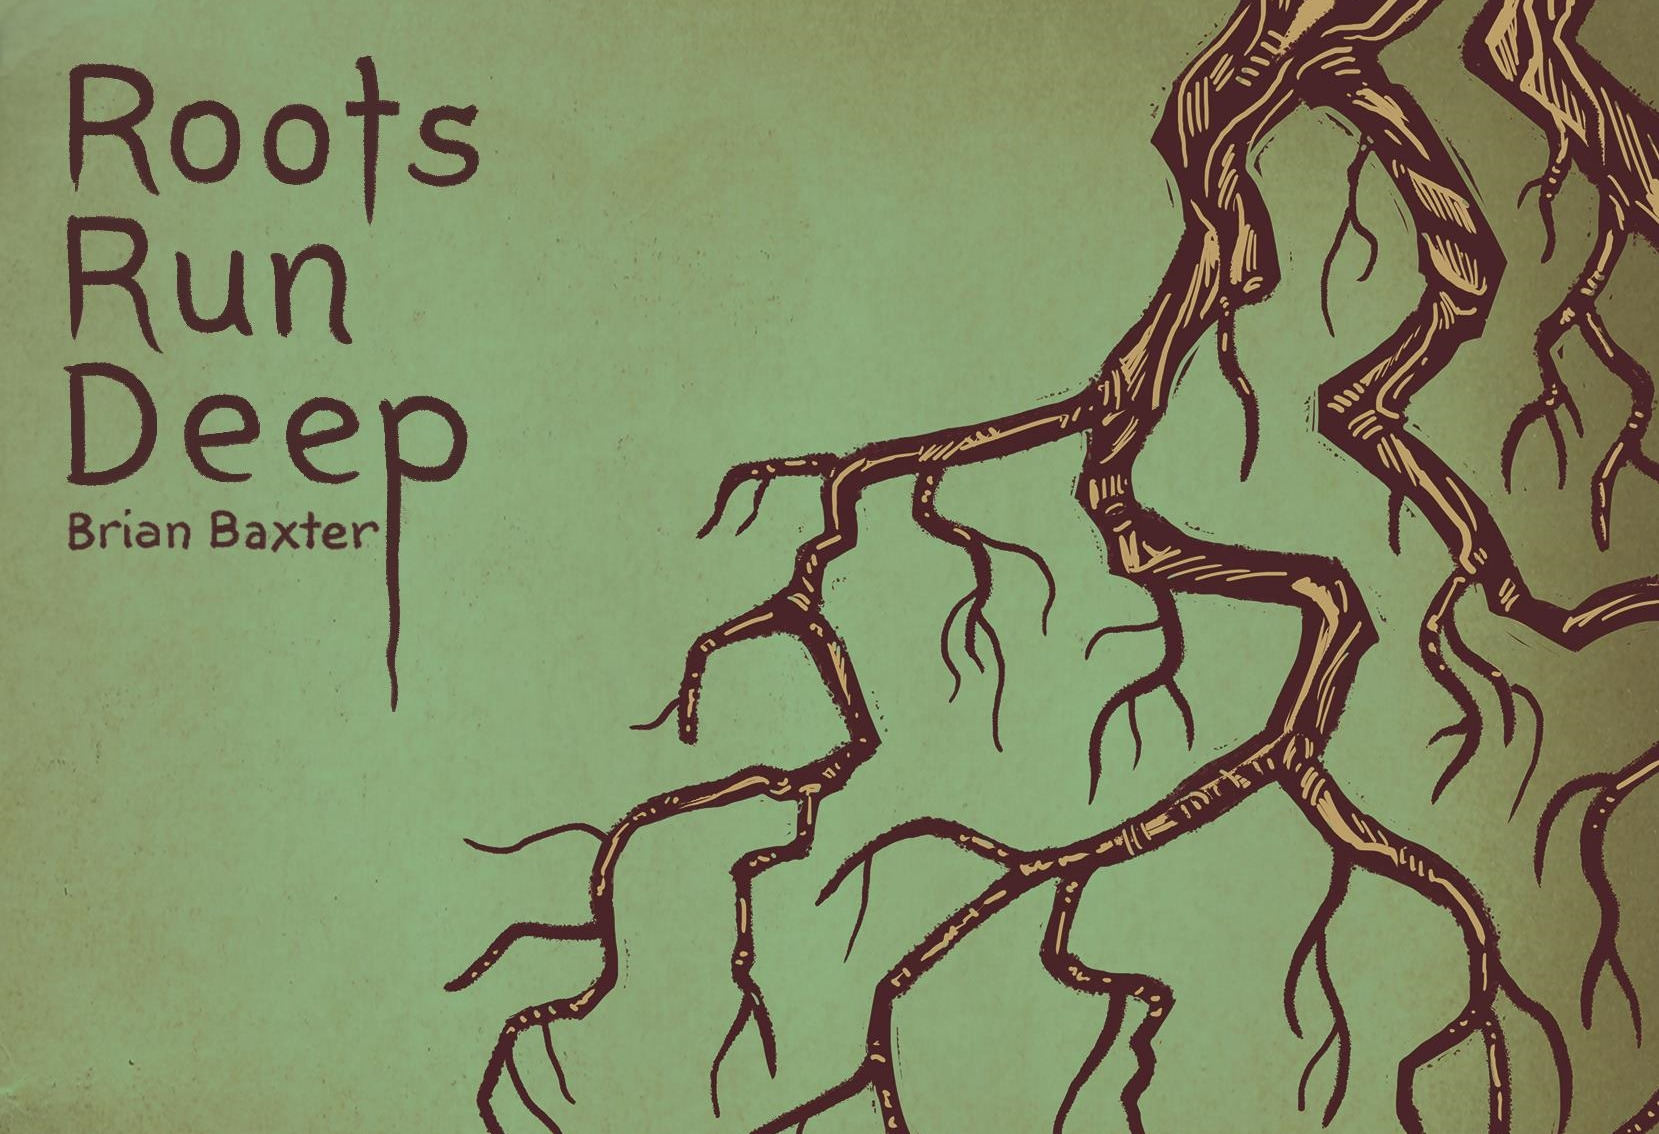 ROOTS RUN DEEP (2016), new record from Chicago Q Ensemble